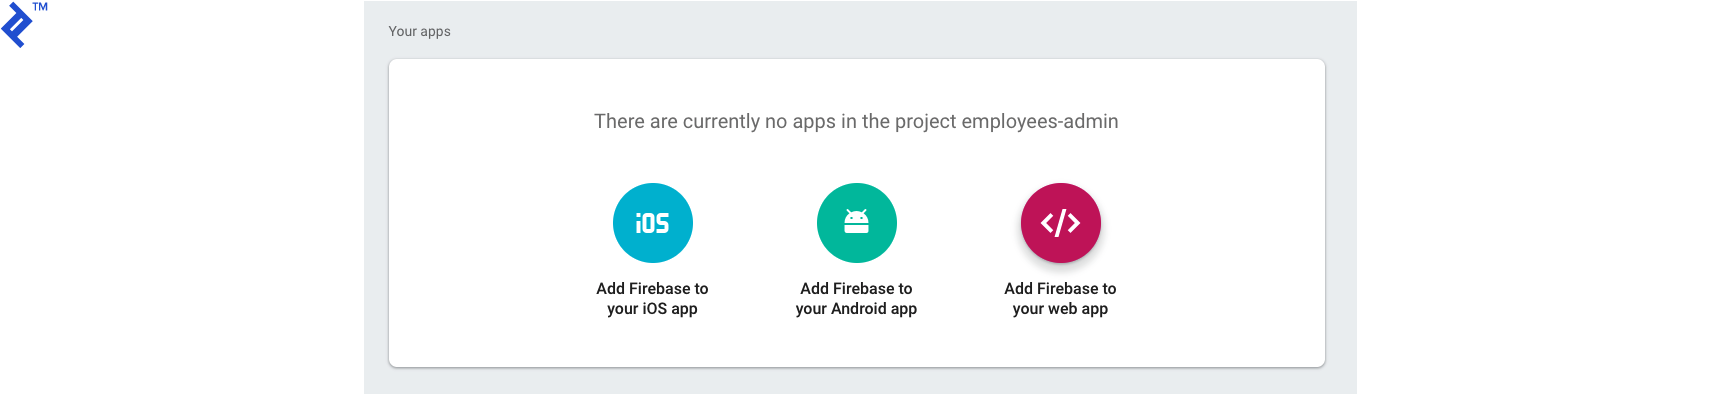 Empty apps listing for the new Firebase project.